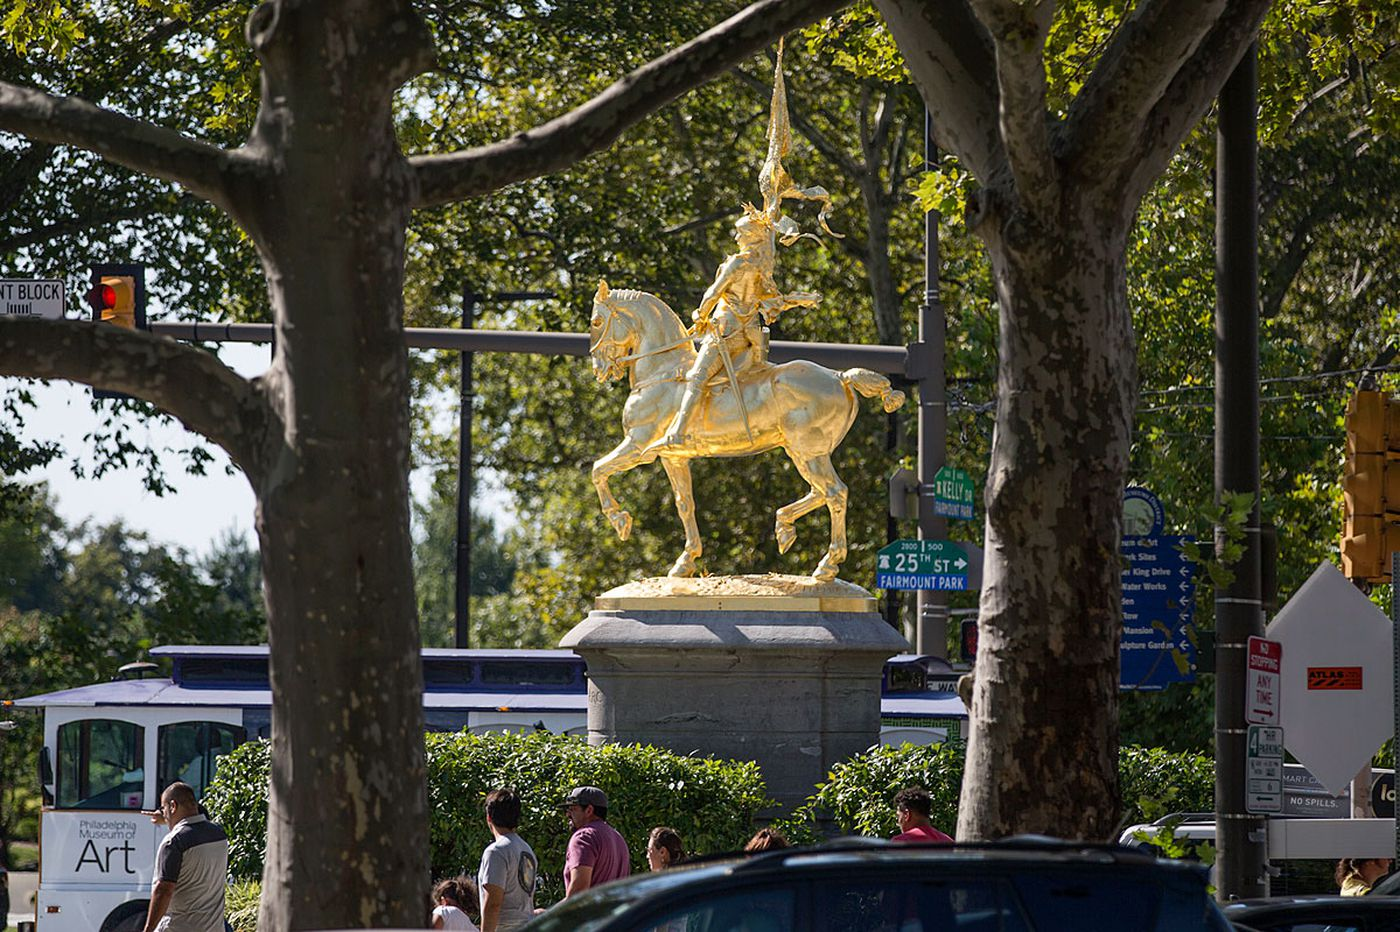 New York will address its monument gender gap by adding statues of women. What about Philly?